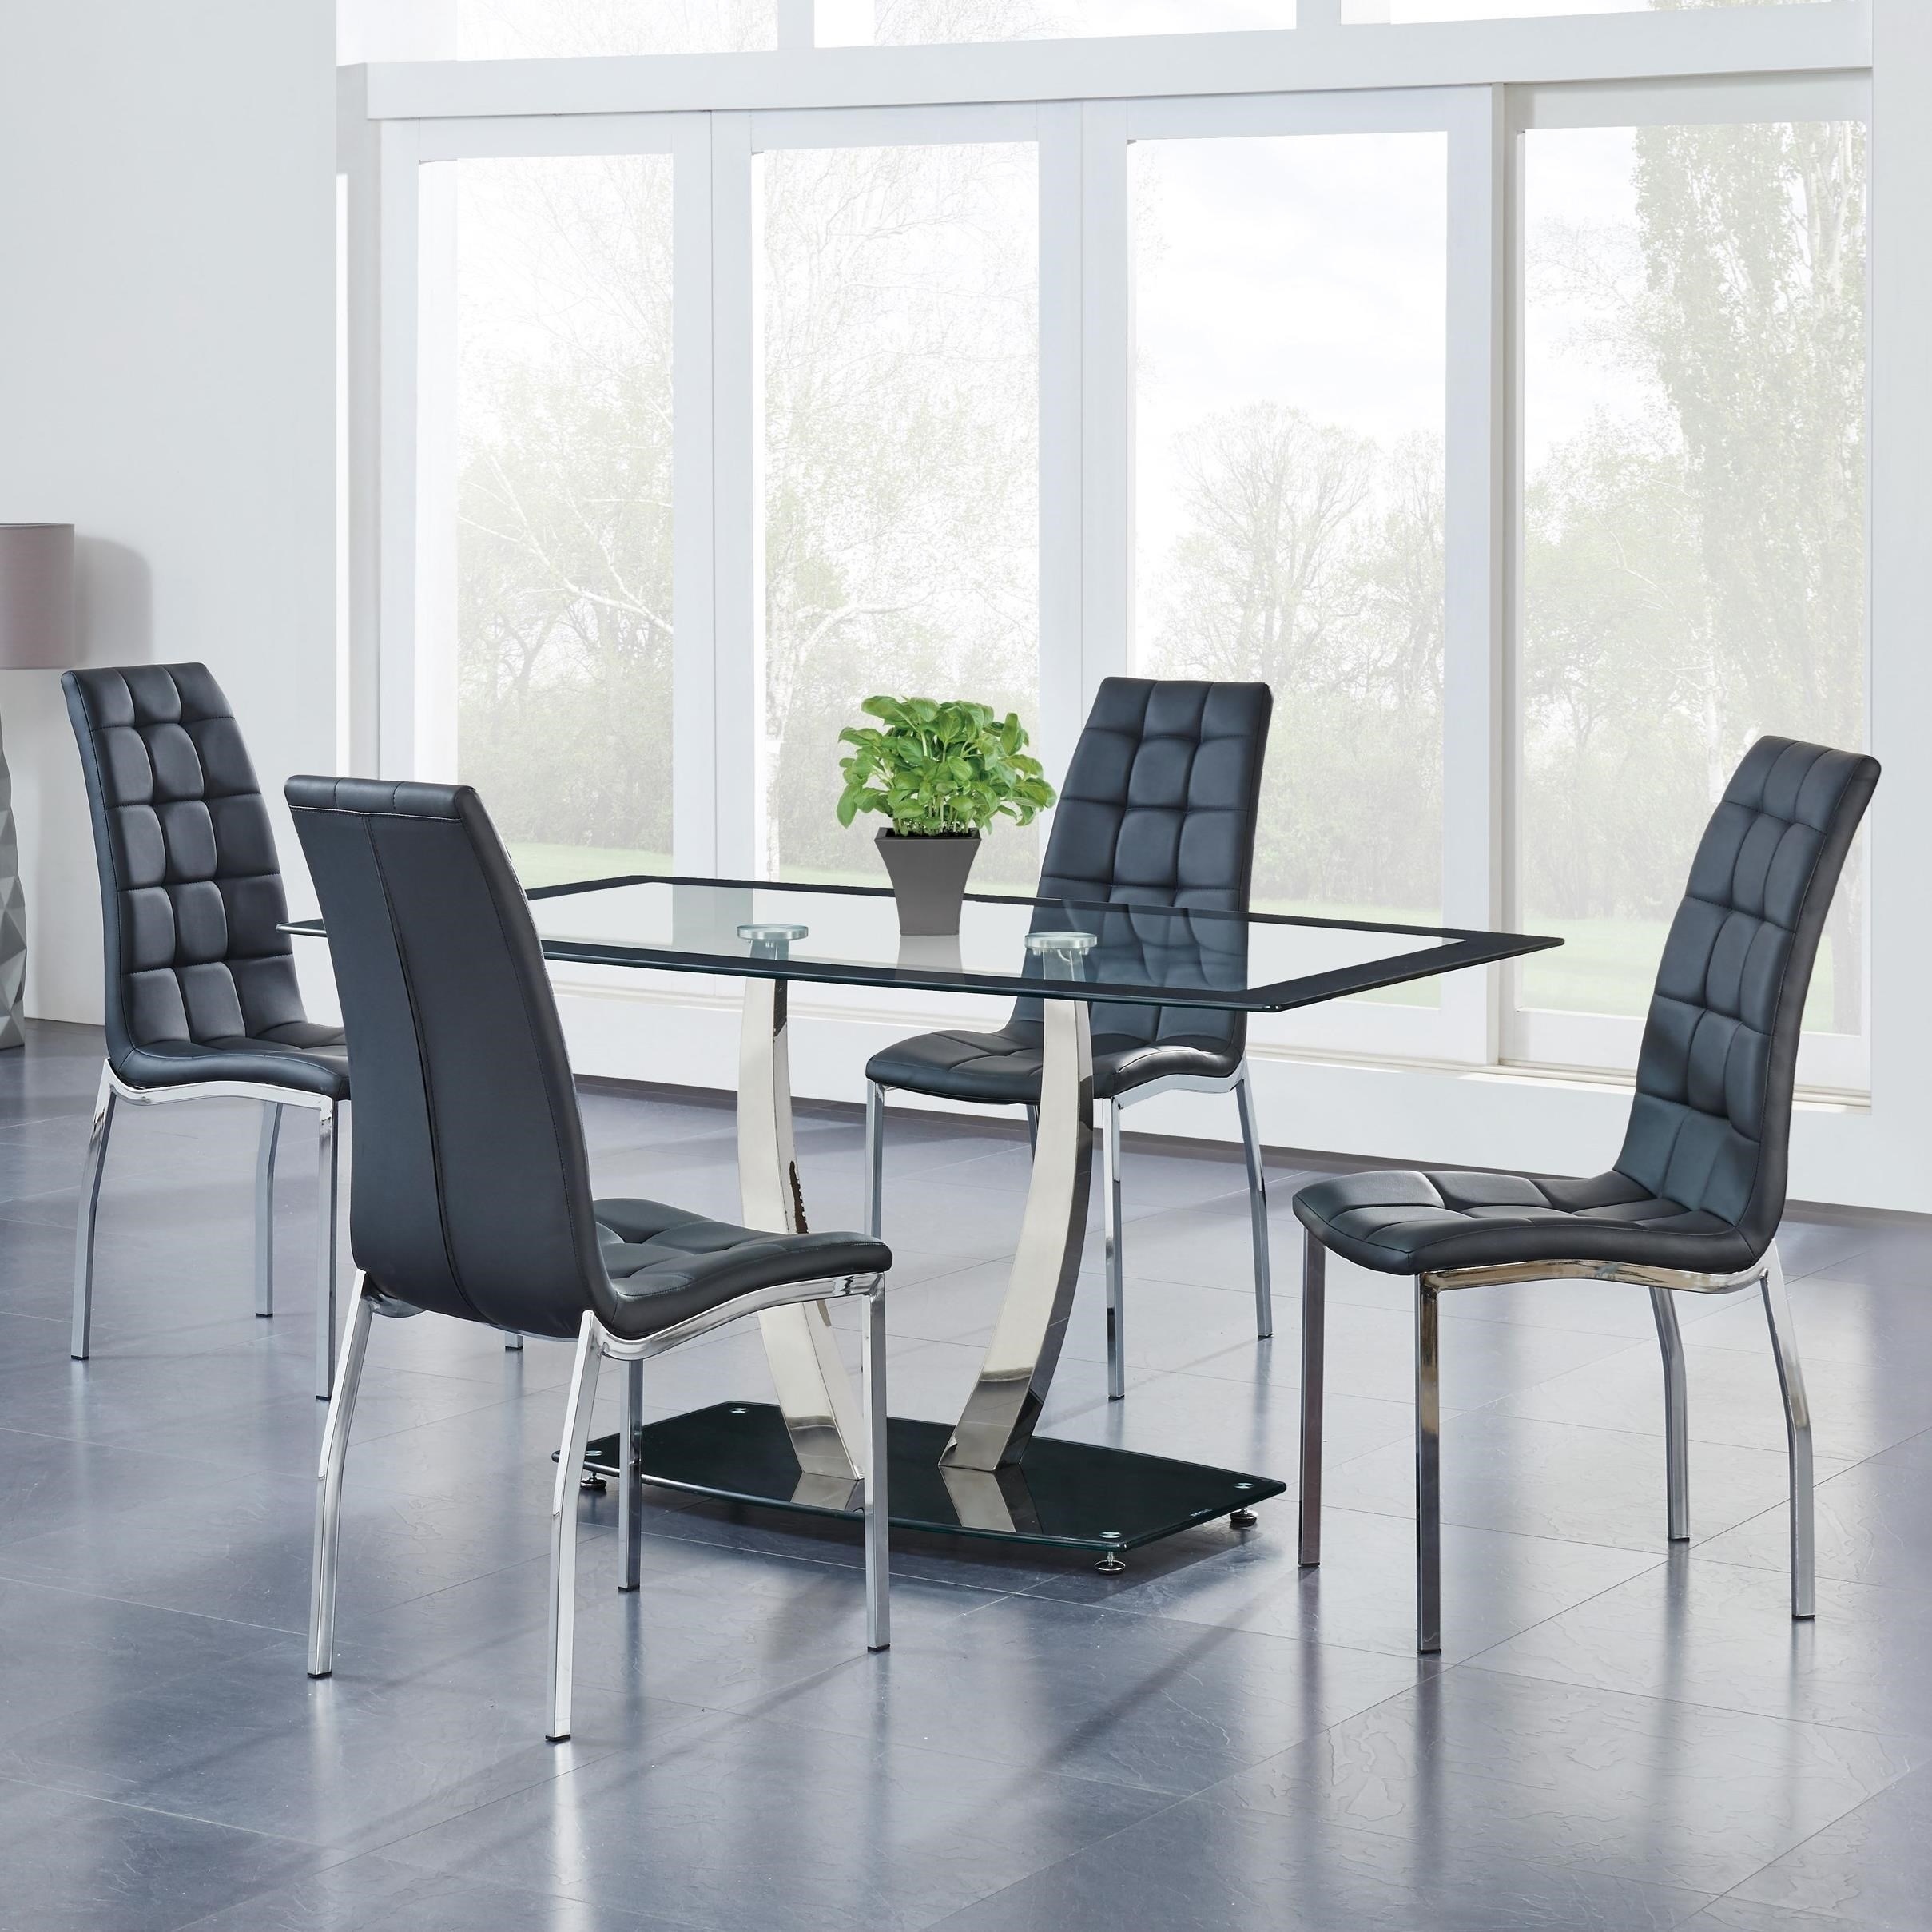 716 5-Piece Dining Set by Global Furniture at Dream Home Interiors